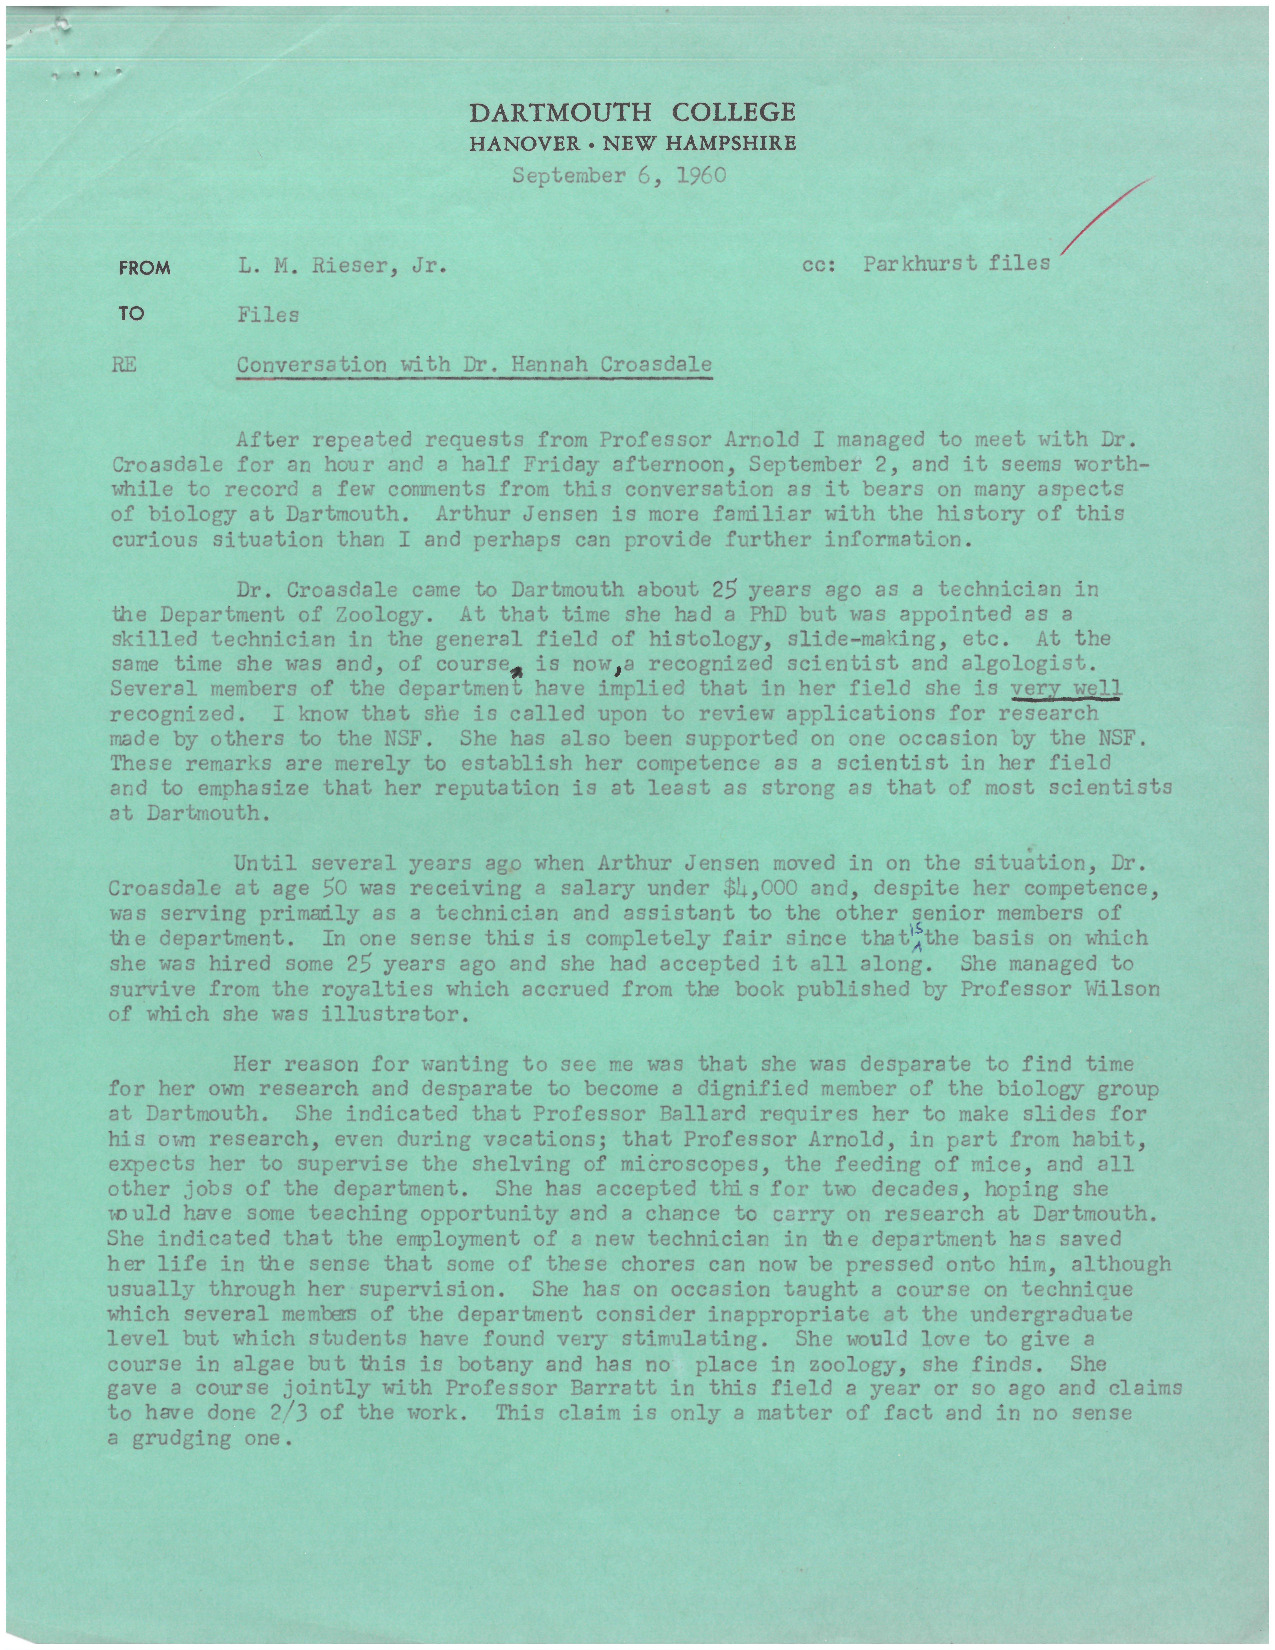 "A memo by Leonard Rieser following a conversation with Hannah Croasdale. Their meeting began an investigation by Rieser and his colleagues to prove Croasdale deserved a promotion, which generated a series of memos referred to in short as the ""Croasdale Memos."" In their initial conversation, Croasdale discussed feeling ""pushed around by senior members of the department [Zoology]"" and expressed frustration with the lack of time available to her to pursue her own research. Rieser remarks that she specifically asked him if she had tenure, suggesting that her role in the department was unclear. He concludes the memo by opining that ""she seeks no special favors but rather equality commensurate with her scientific ability and reputation."""